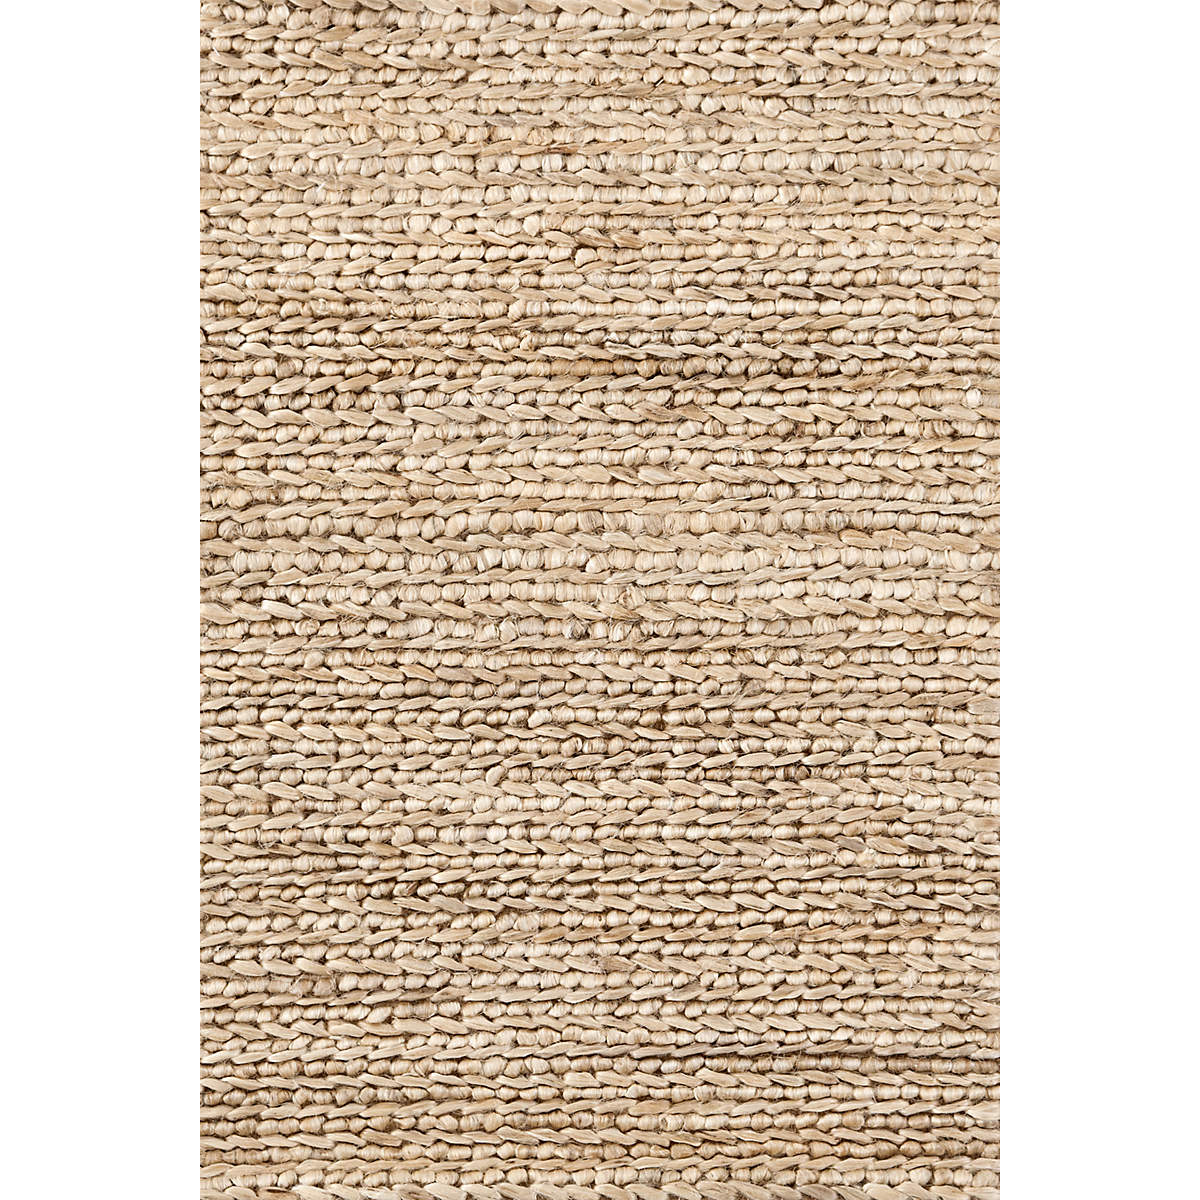 natural rugs jute woven natural rug | dash u0026 albert GHGXQCK